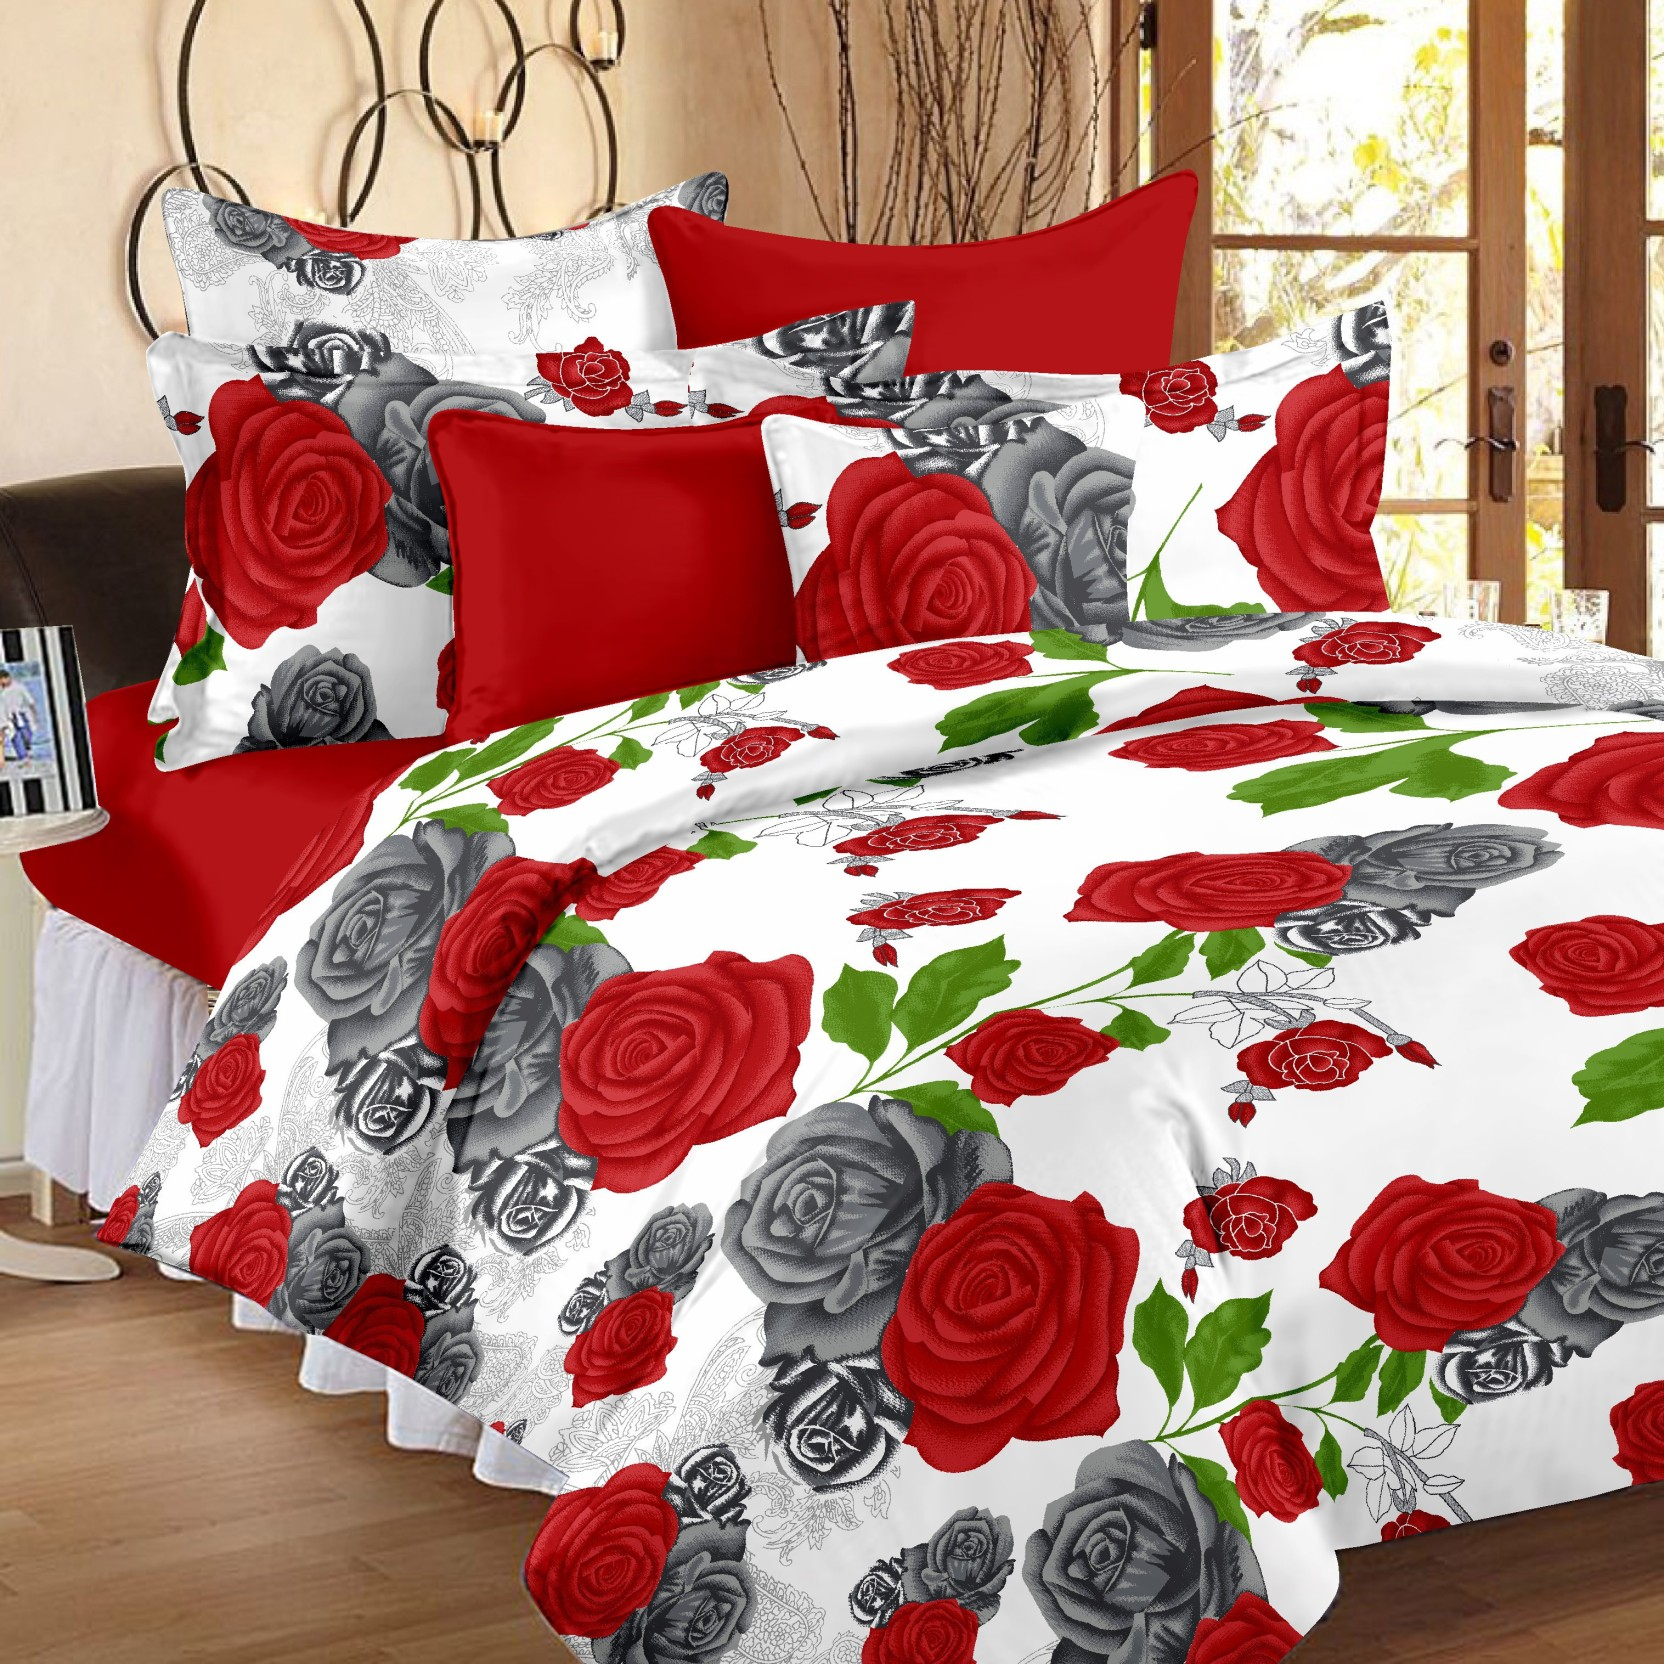 Double Bed Sheet Size India